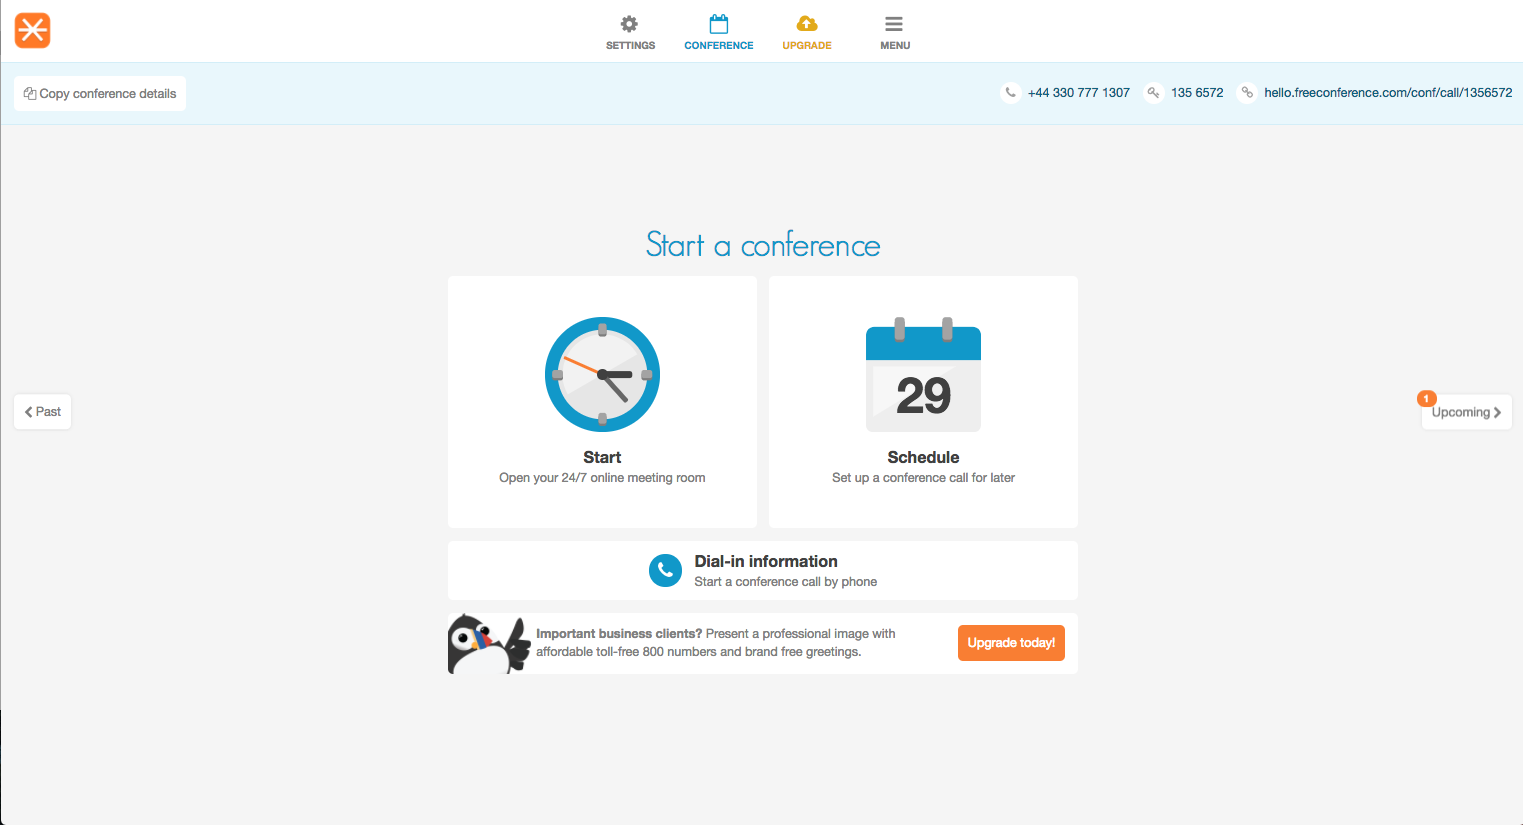 FreeConference com Reviews 2019: Details, Pricing